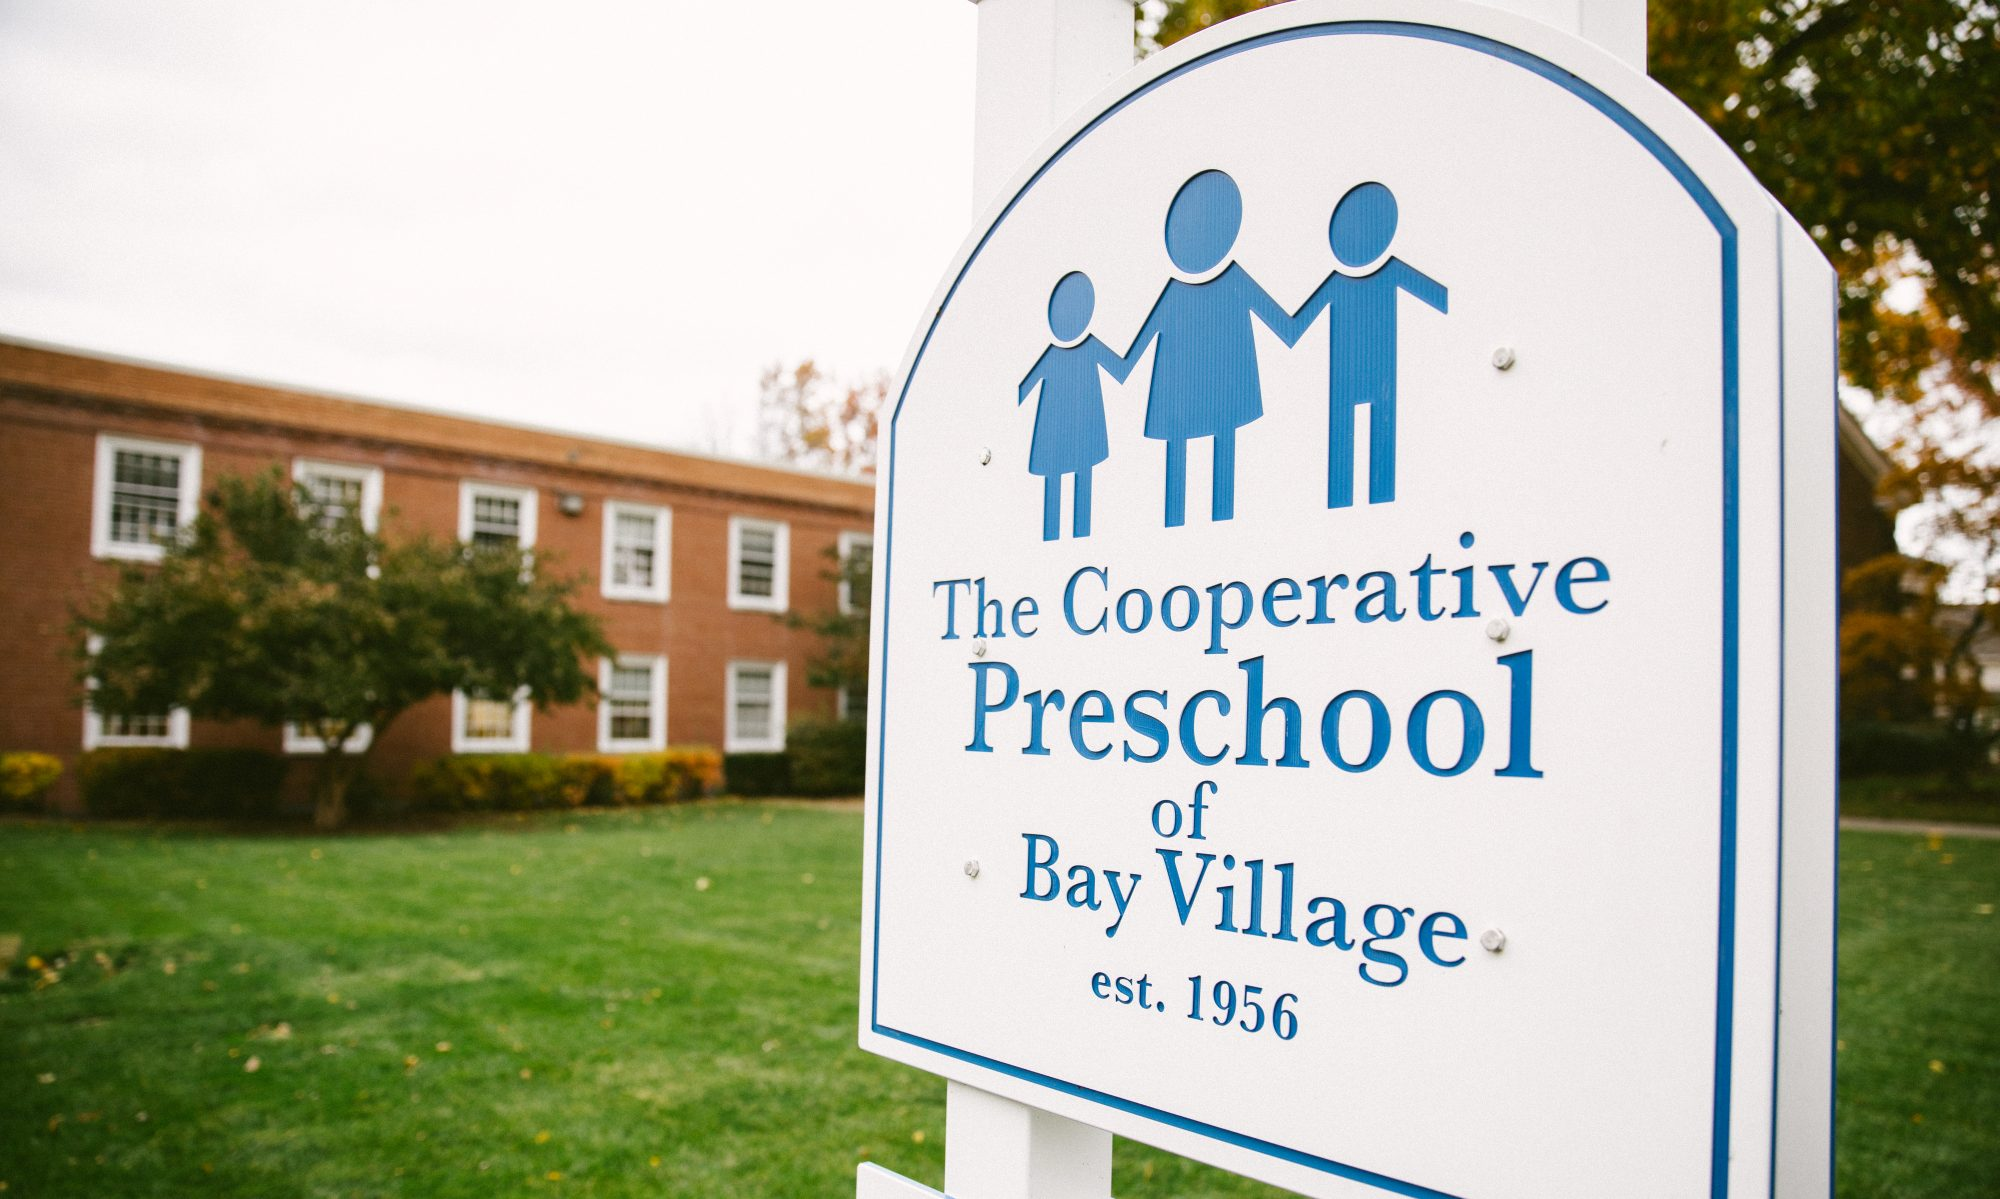 The Cooperative Preschool of Bay Village